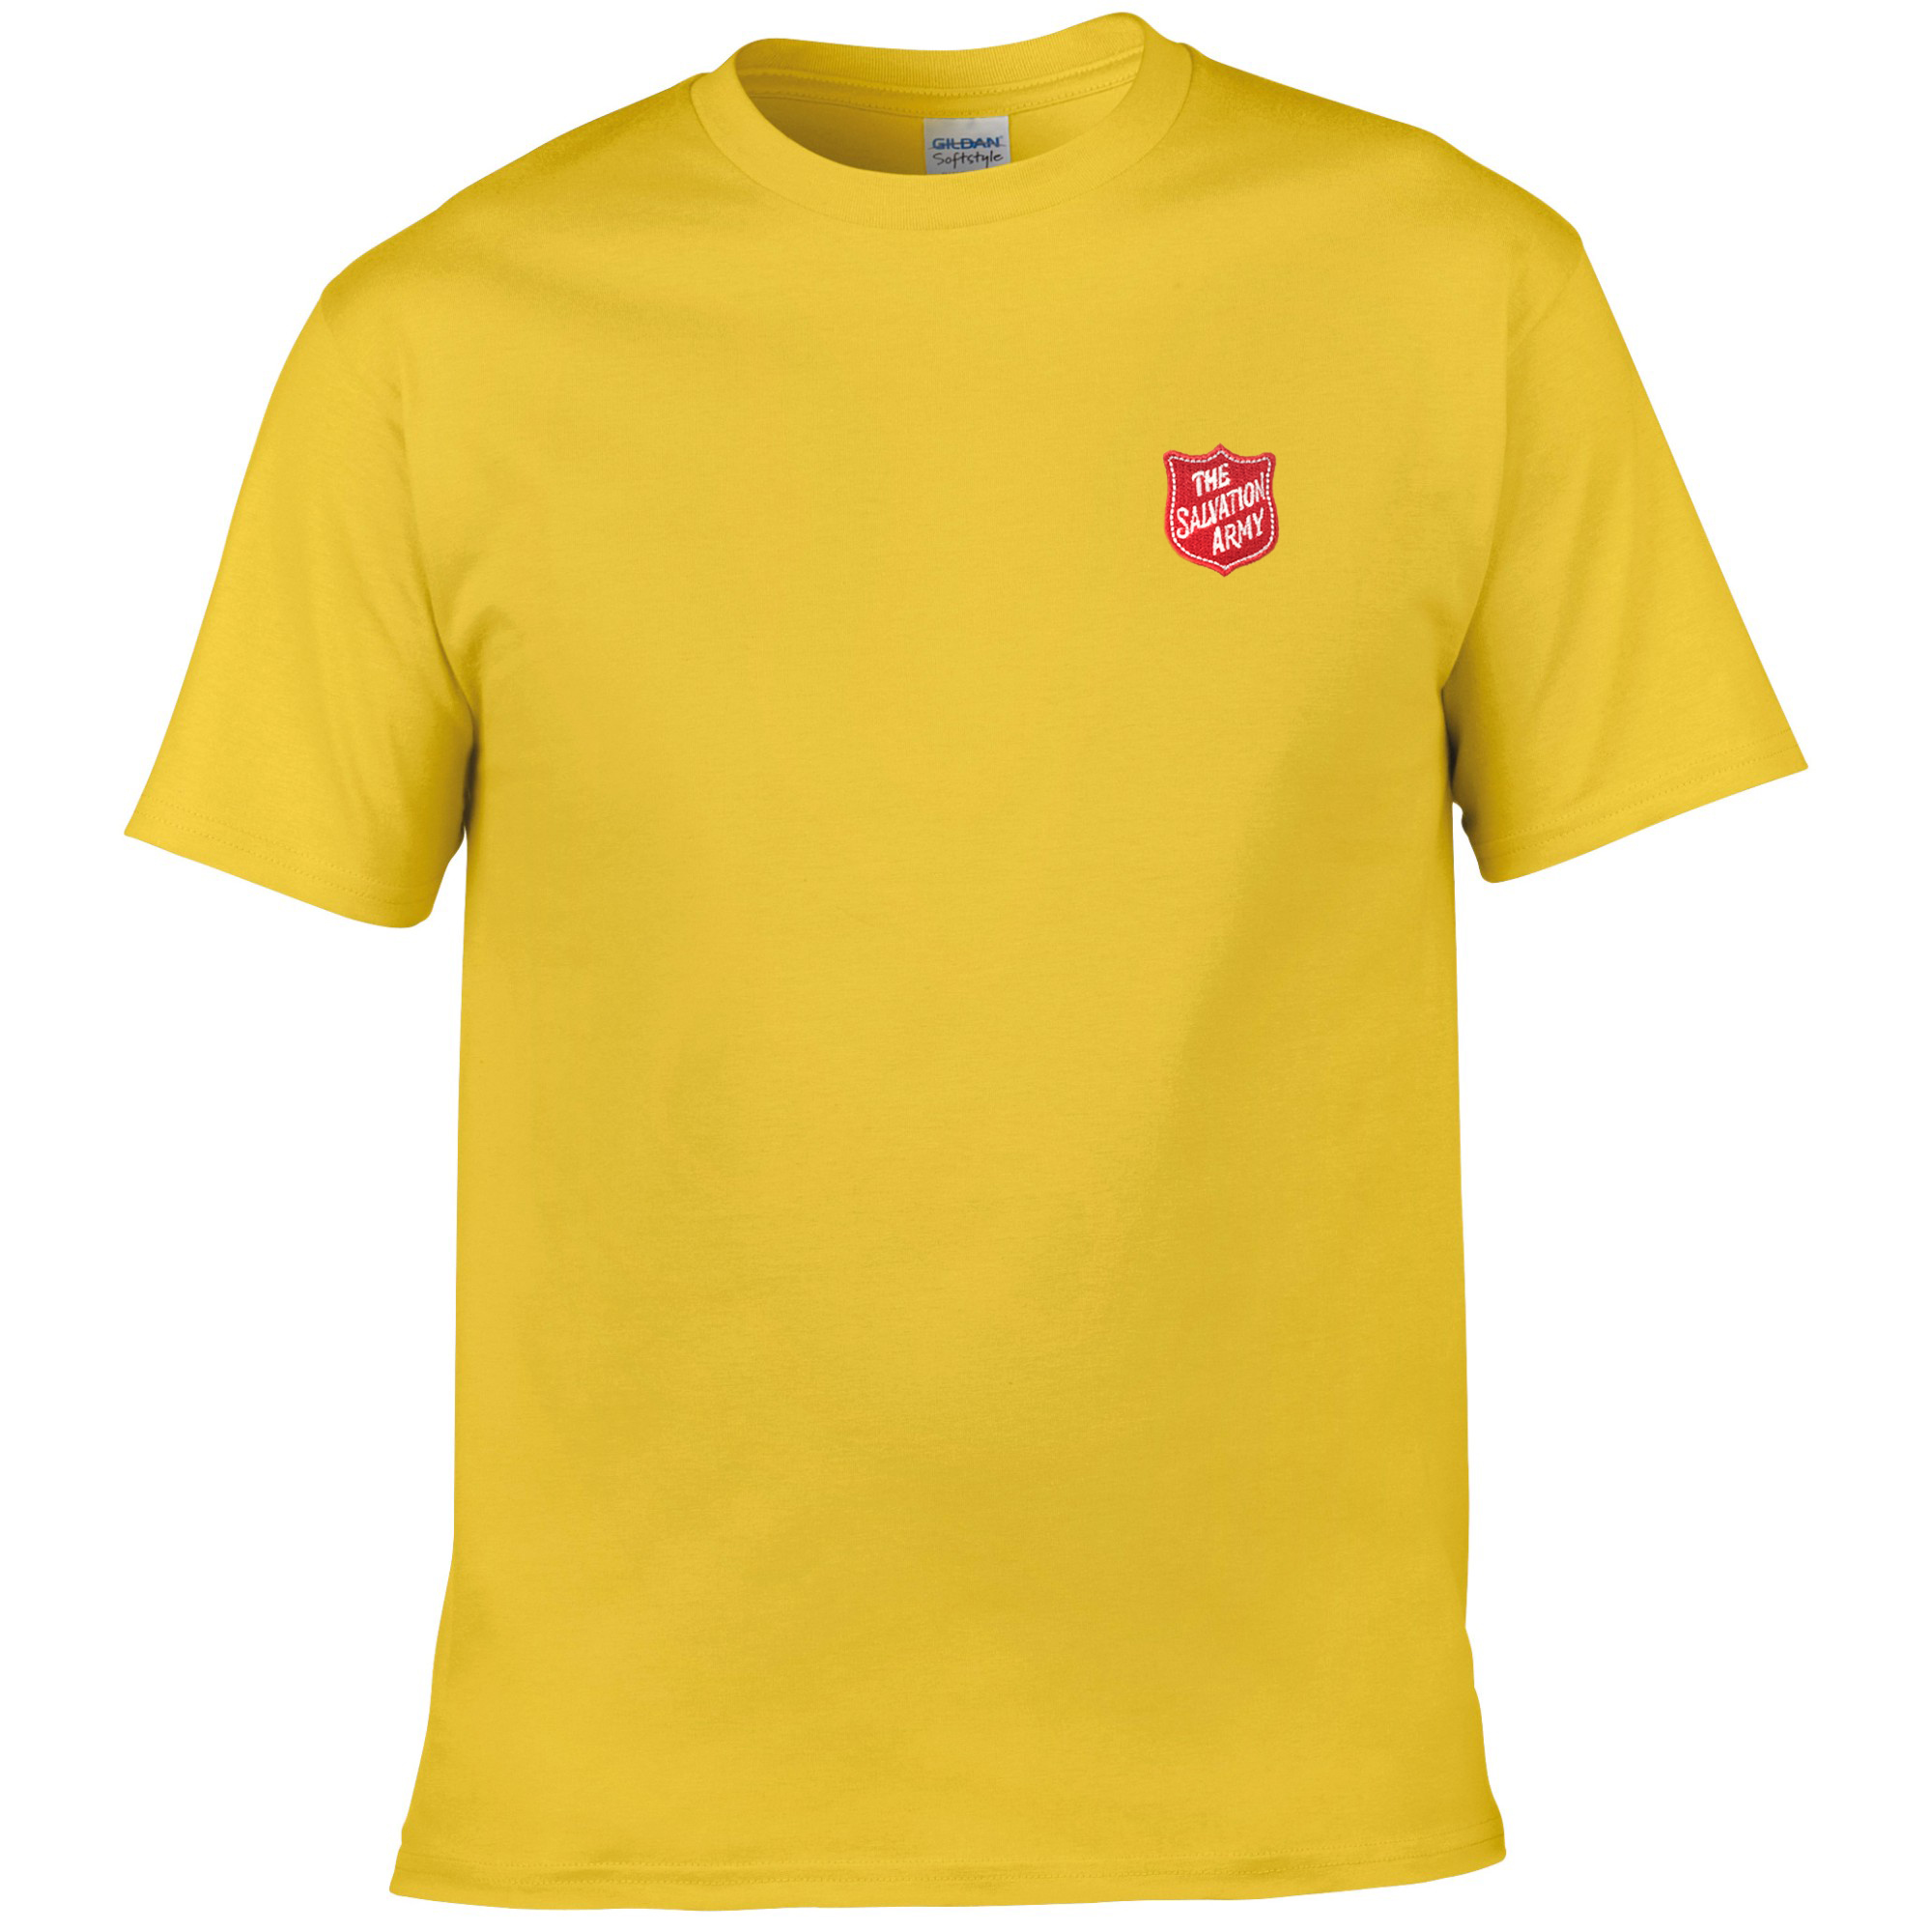 Essentials T Shirt - Yellow with Shield